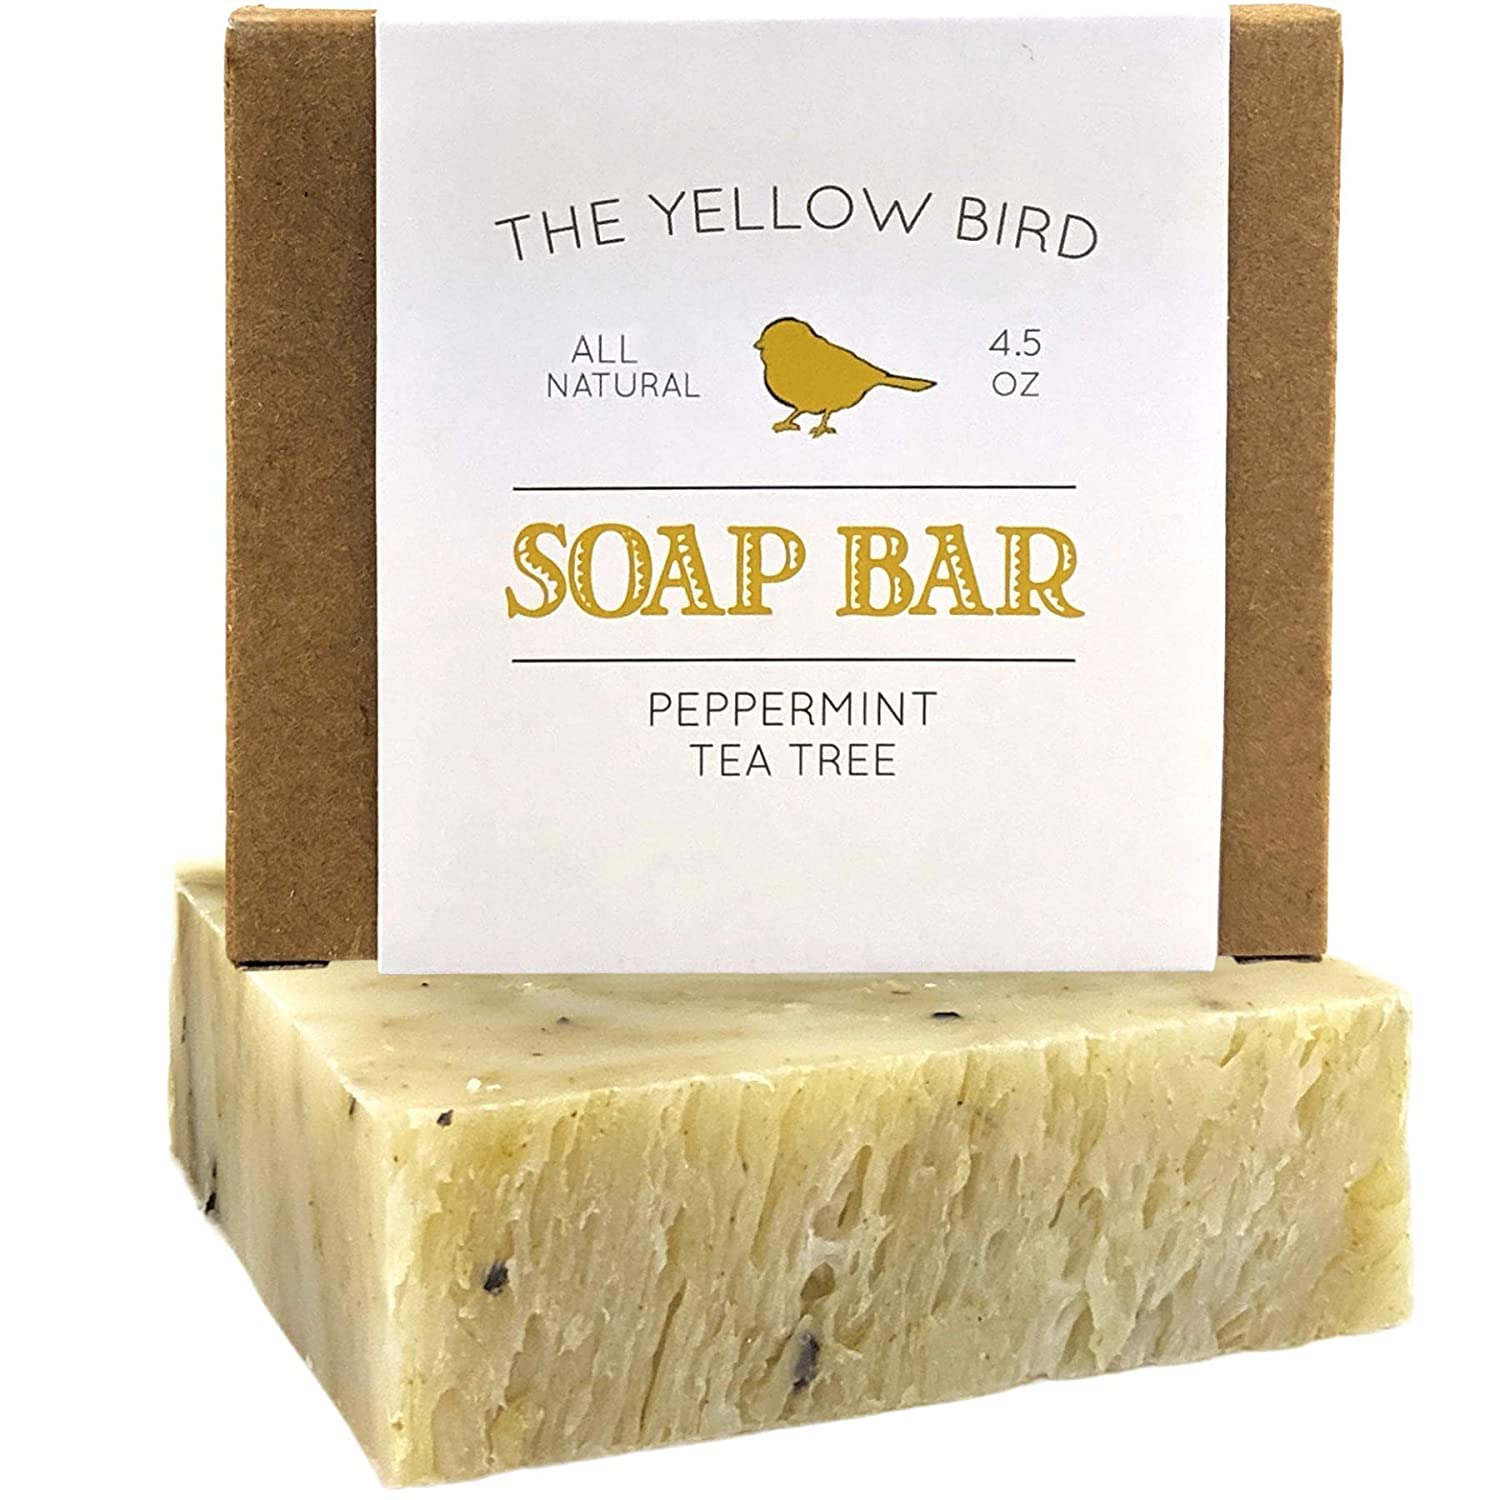 Peppermint and Tea Tree Antibacterial Soap For Body odor